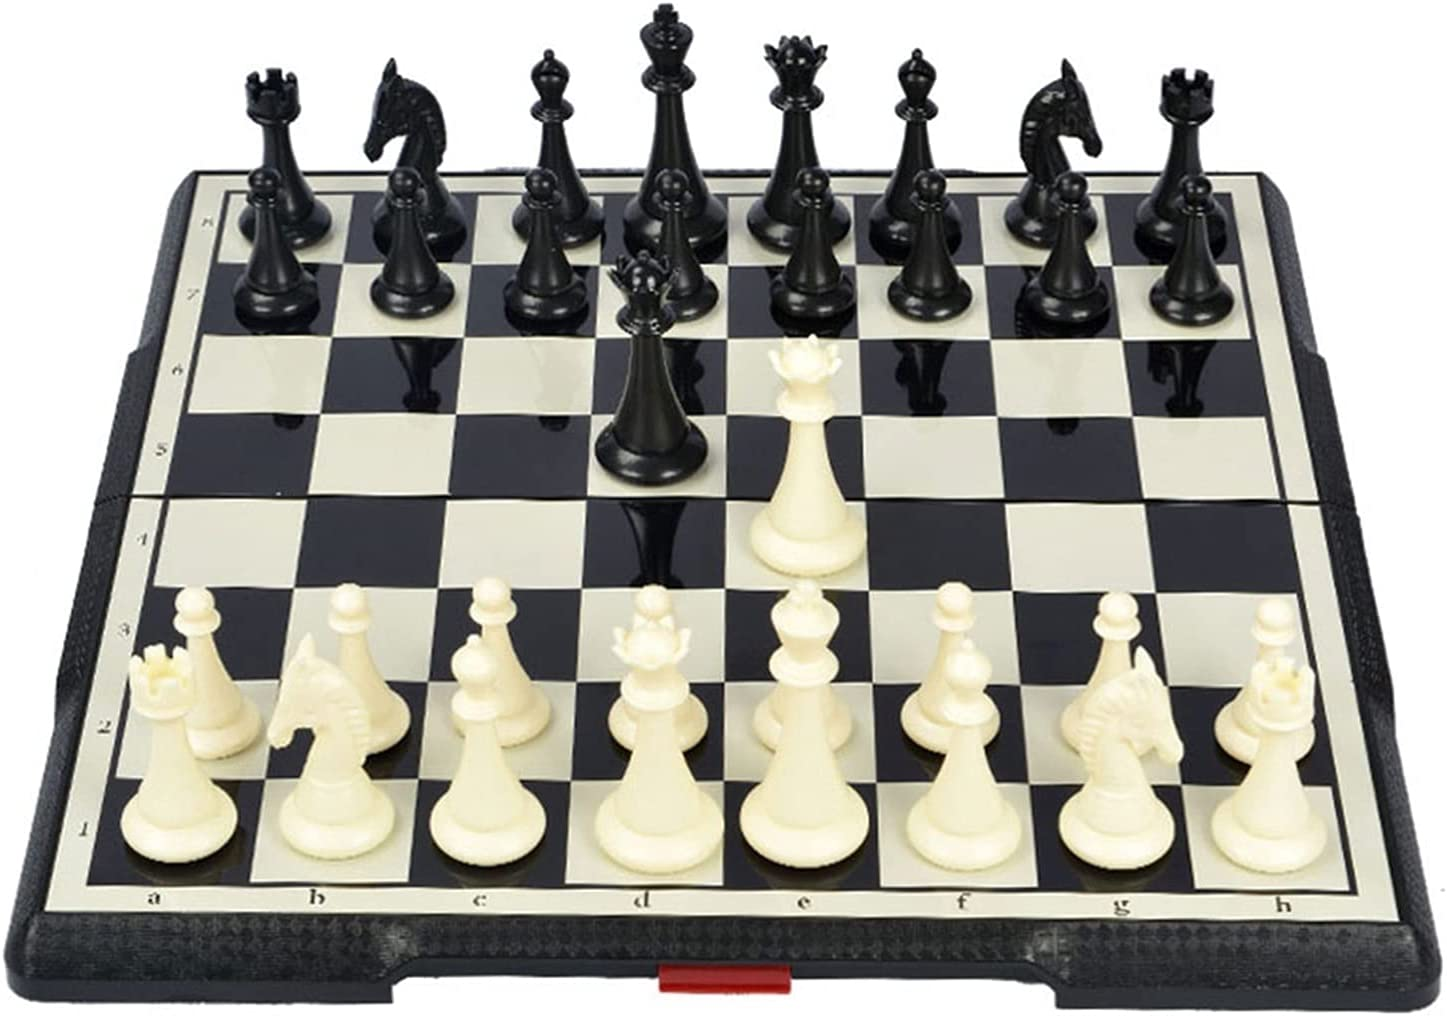 LUYTW Chess Set Magnetic Beauty products Folding Manufacturer direct delivery and for Adults Kids